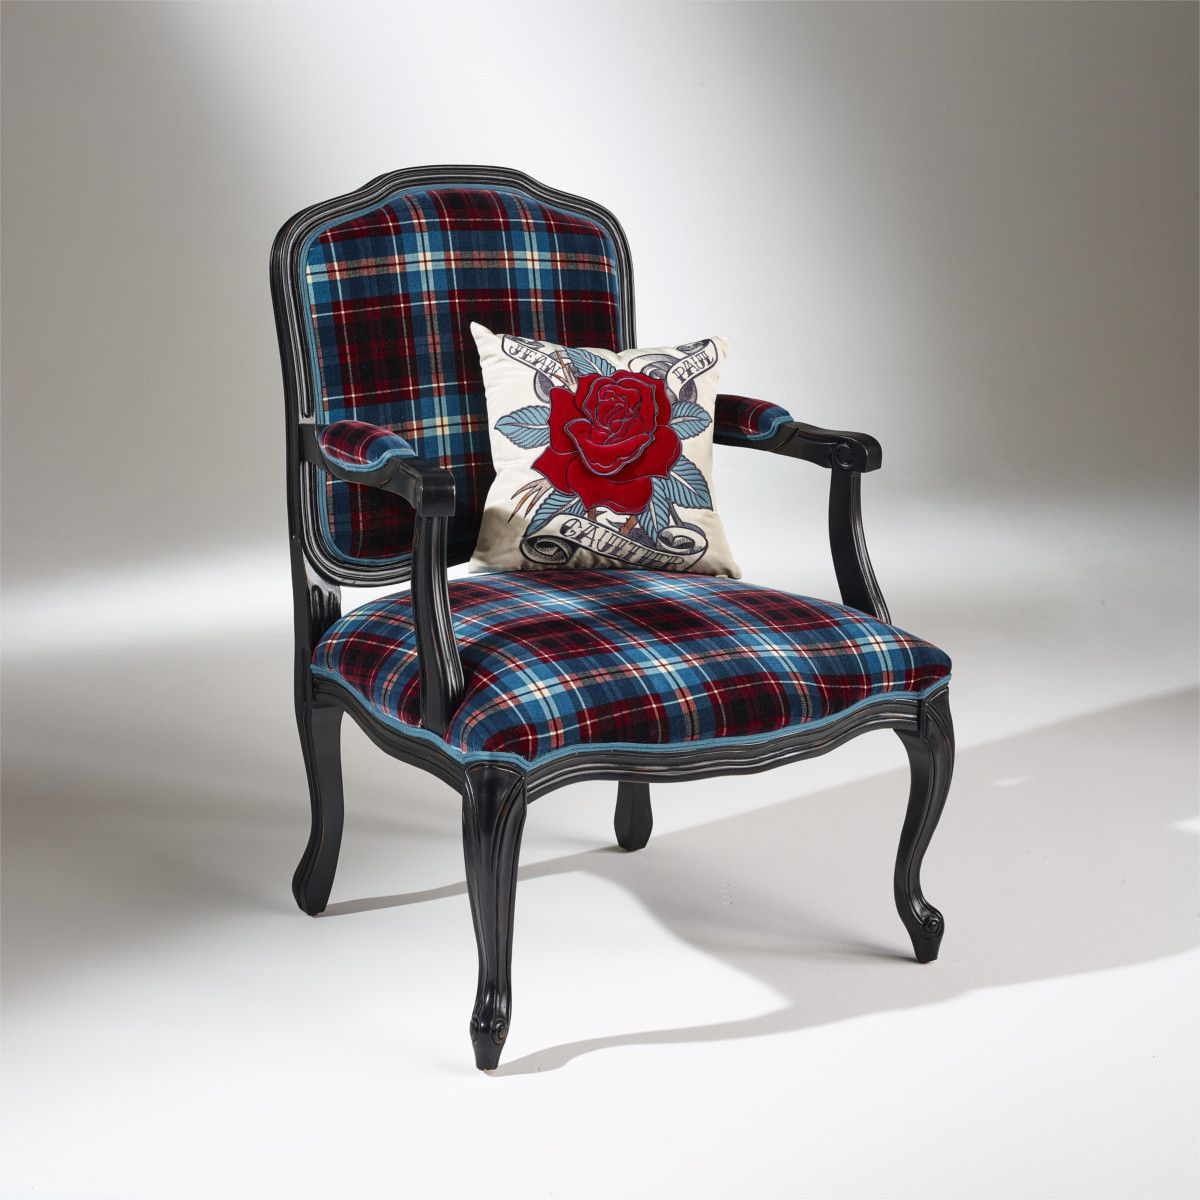 un fauteuil tr s chic rev tu d 39 un tissu cossais en velours de coton sign jean paul gaultier. Black Bedroom Furniture Sets. Home Design Ideas